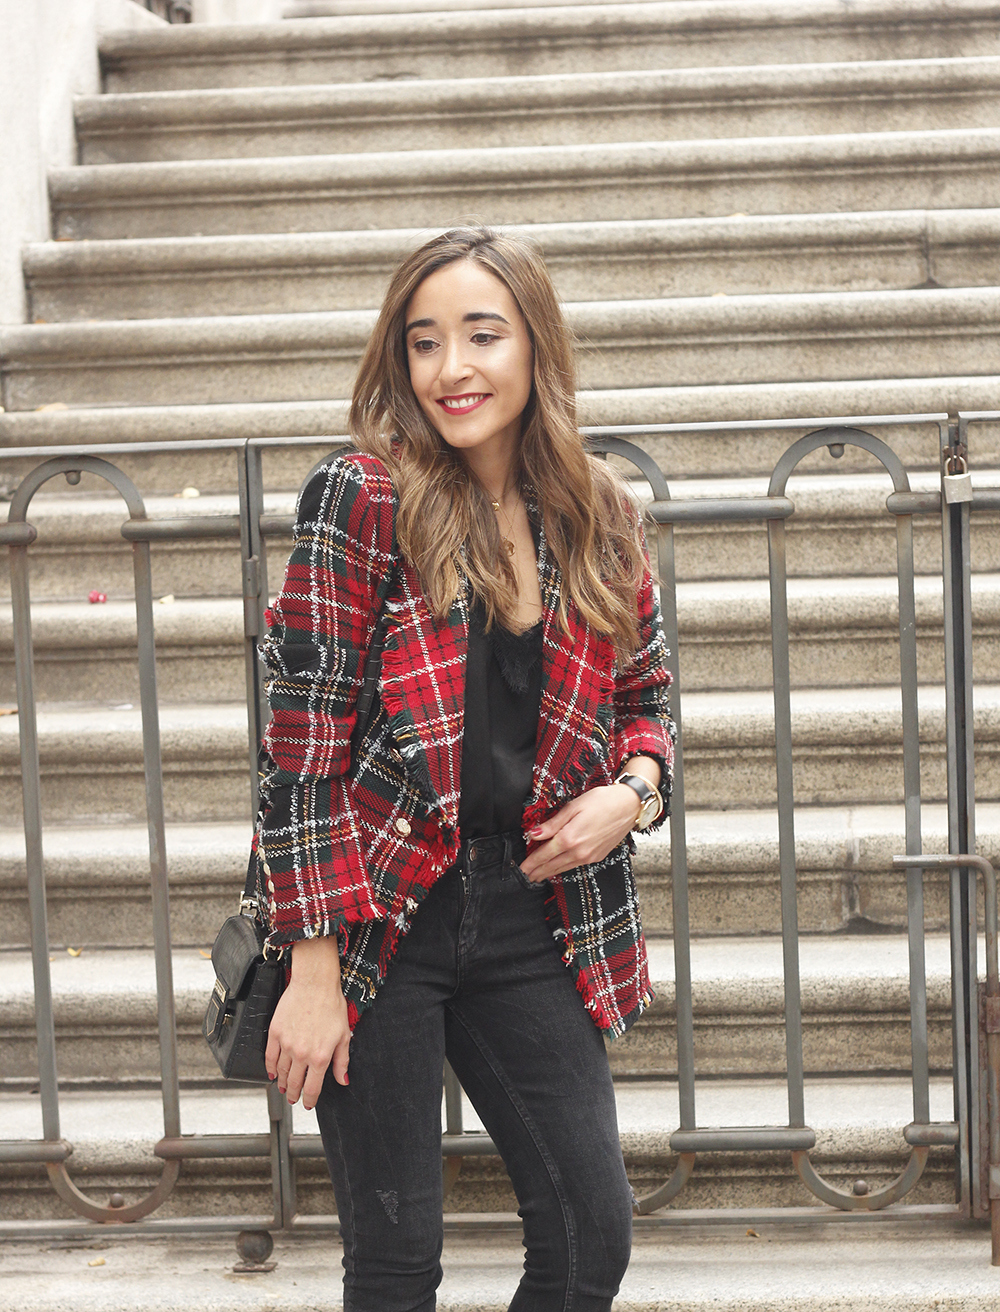 Tartan blazer black outfit heels givenchy bag street style fall outfit 20184136